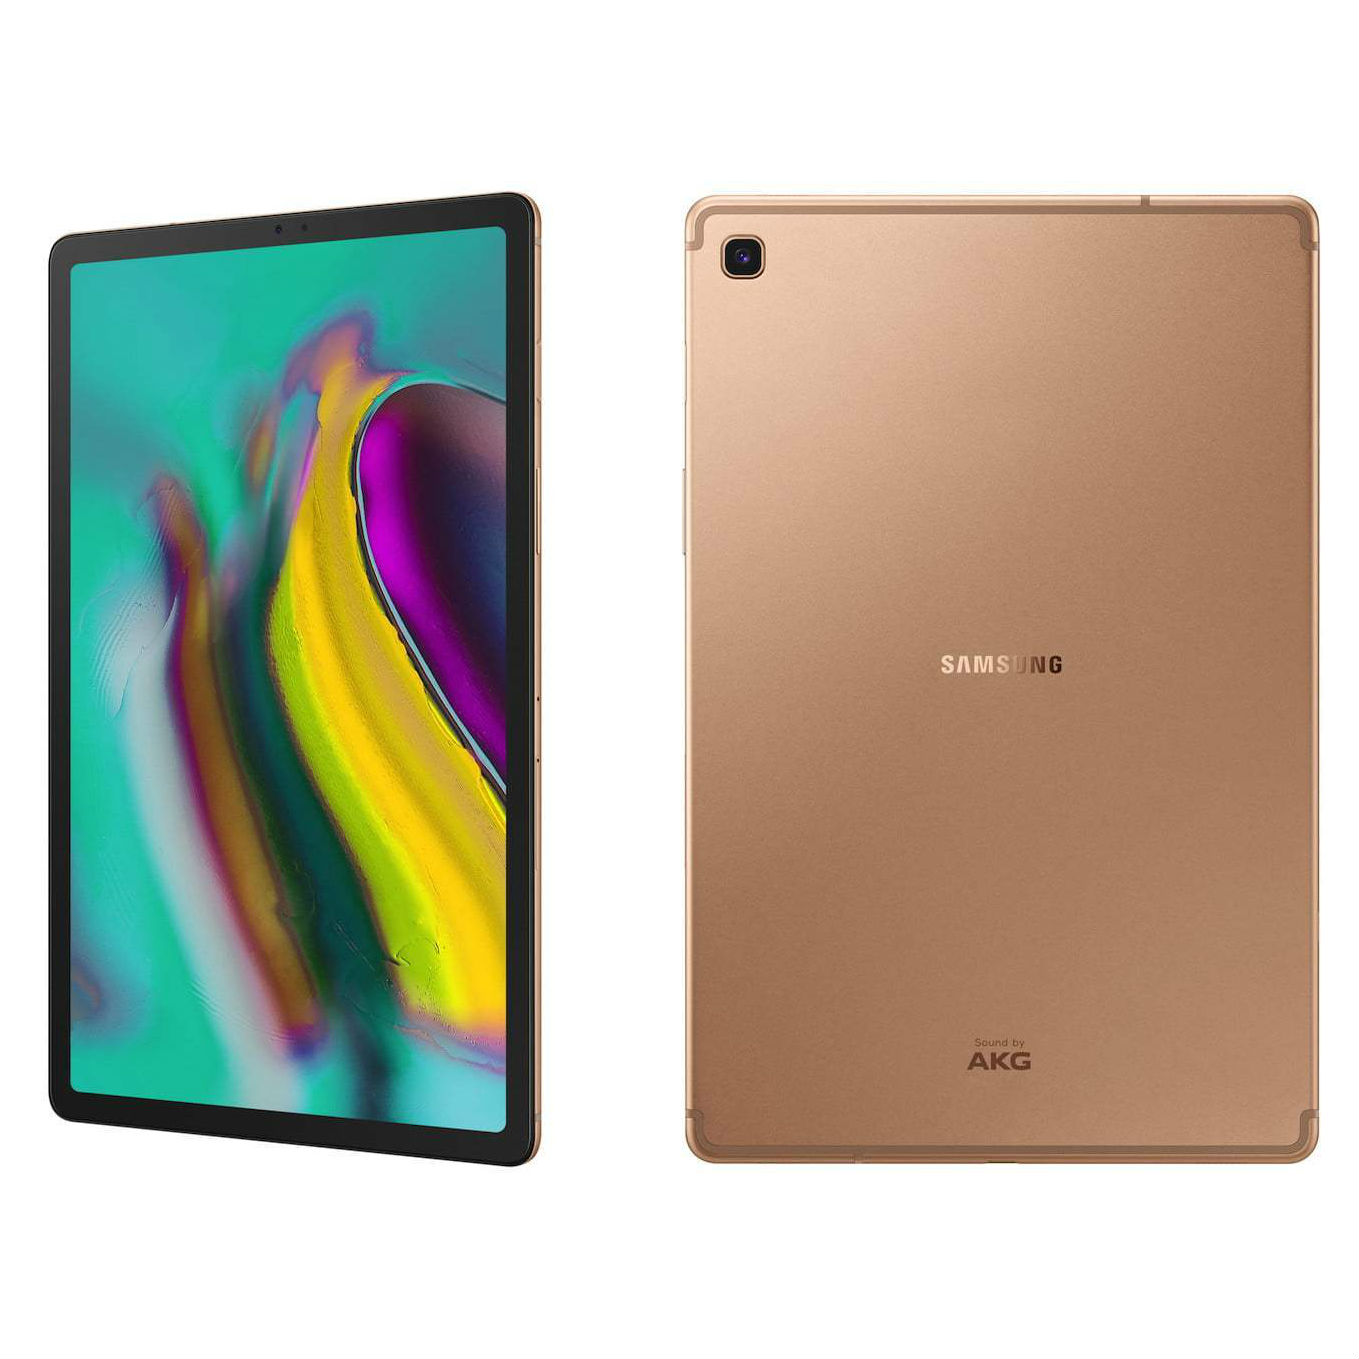 Image of Samsung Galaxy Tab S5e SM-T720 6GB/128GB Wifi - Gold